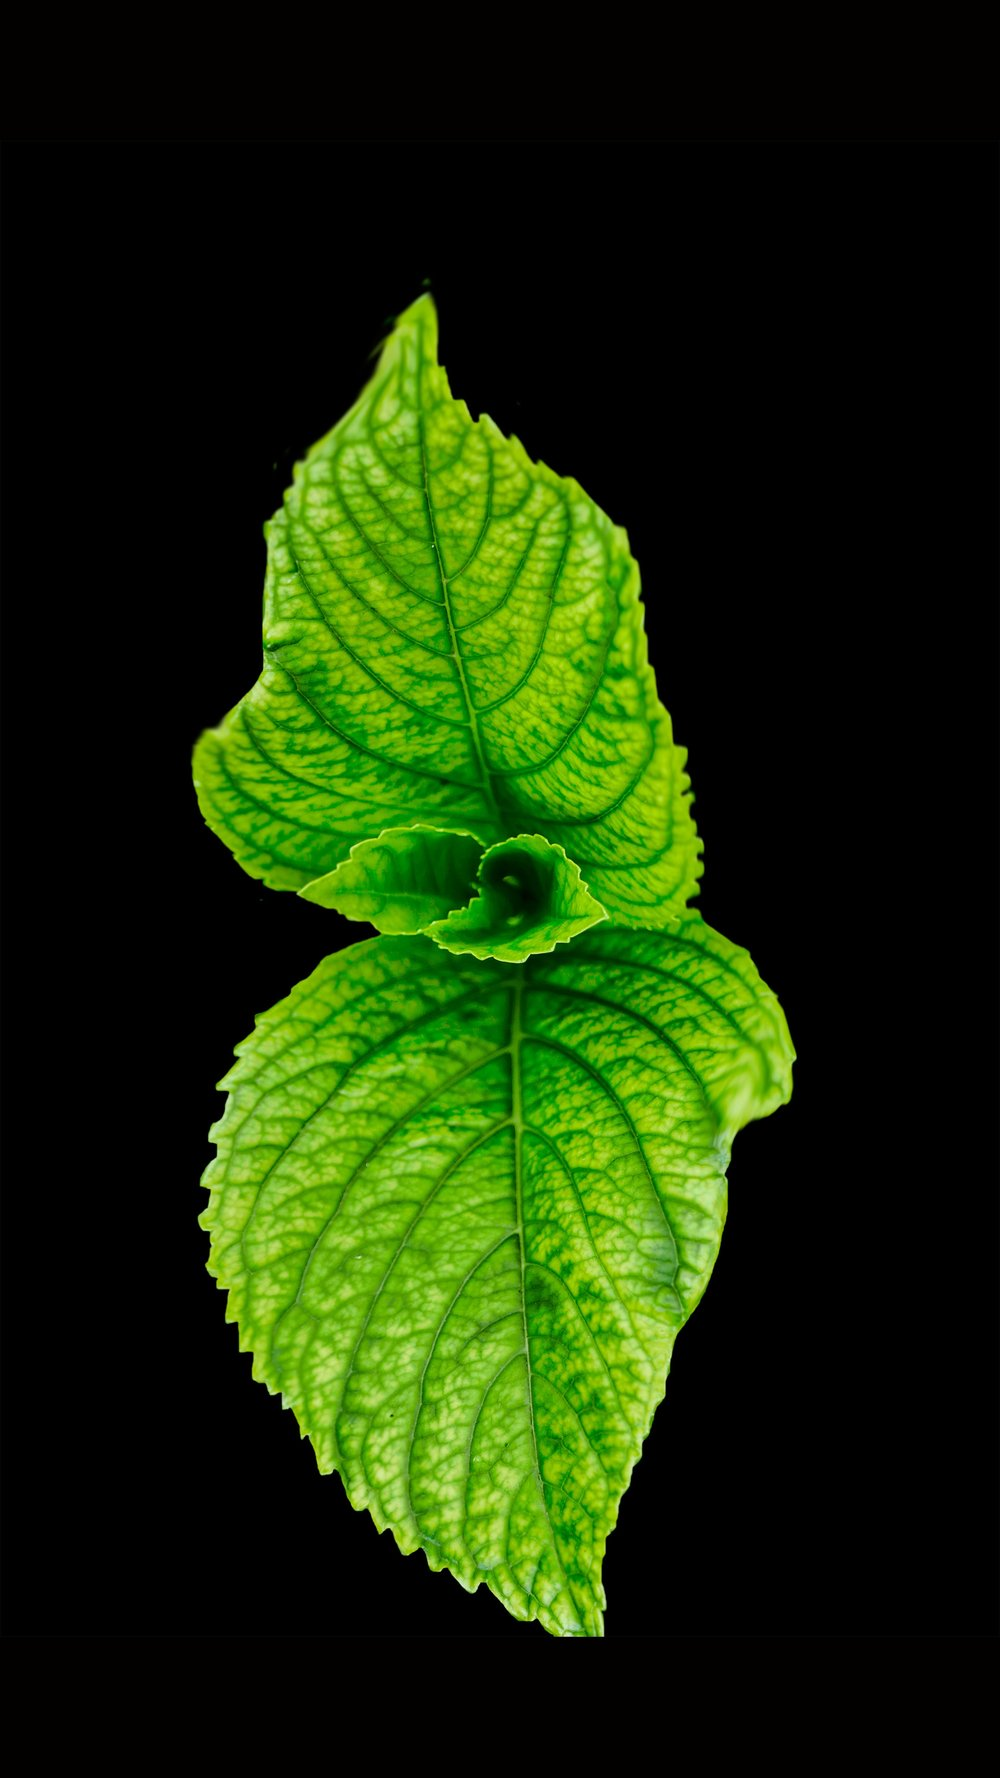 A Mint Leaf - Go Au Naturale and buy some fresh mint.  Looks pretty, tastes great and you can make a mean mojito now summers coming!